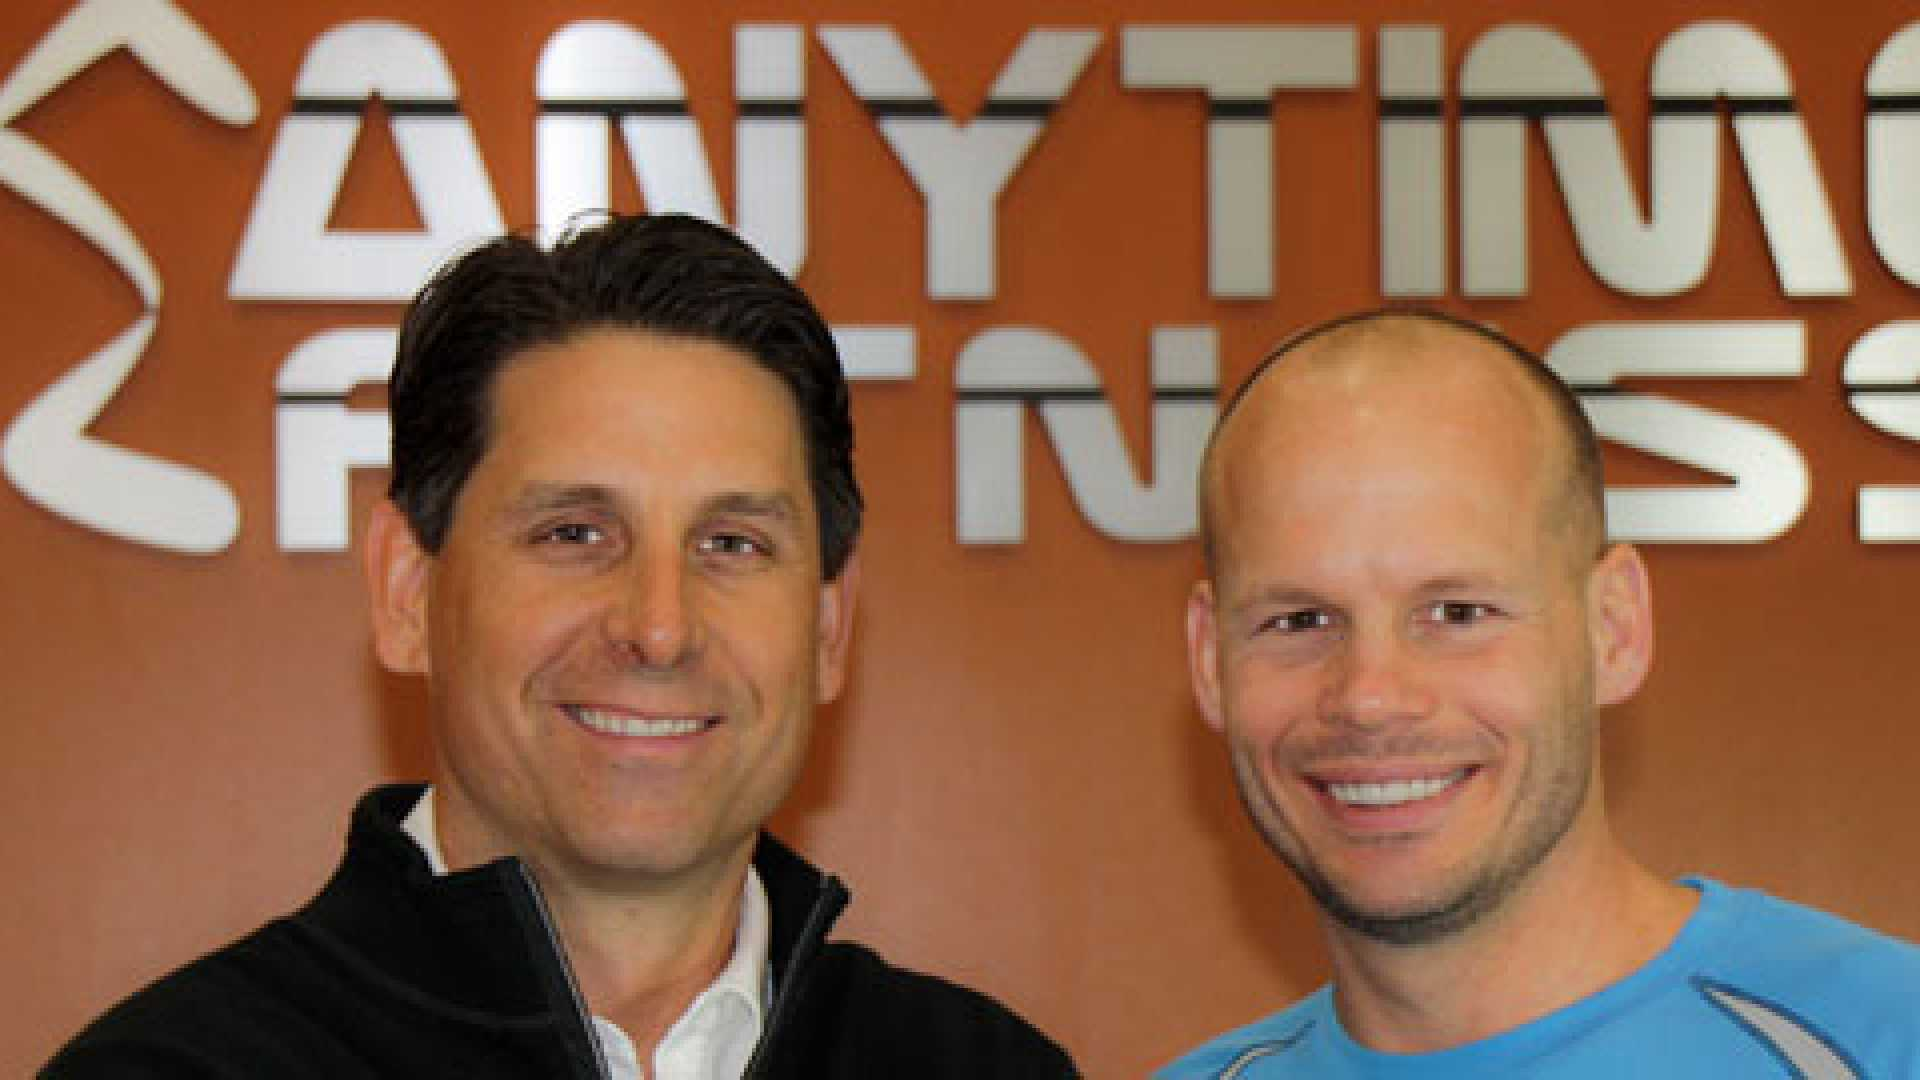 Anytime Fitness co-founders Chuck Runyon (left) and Dave Mortensen.